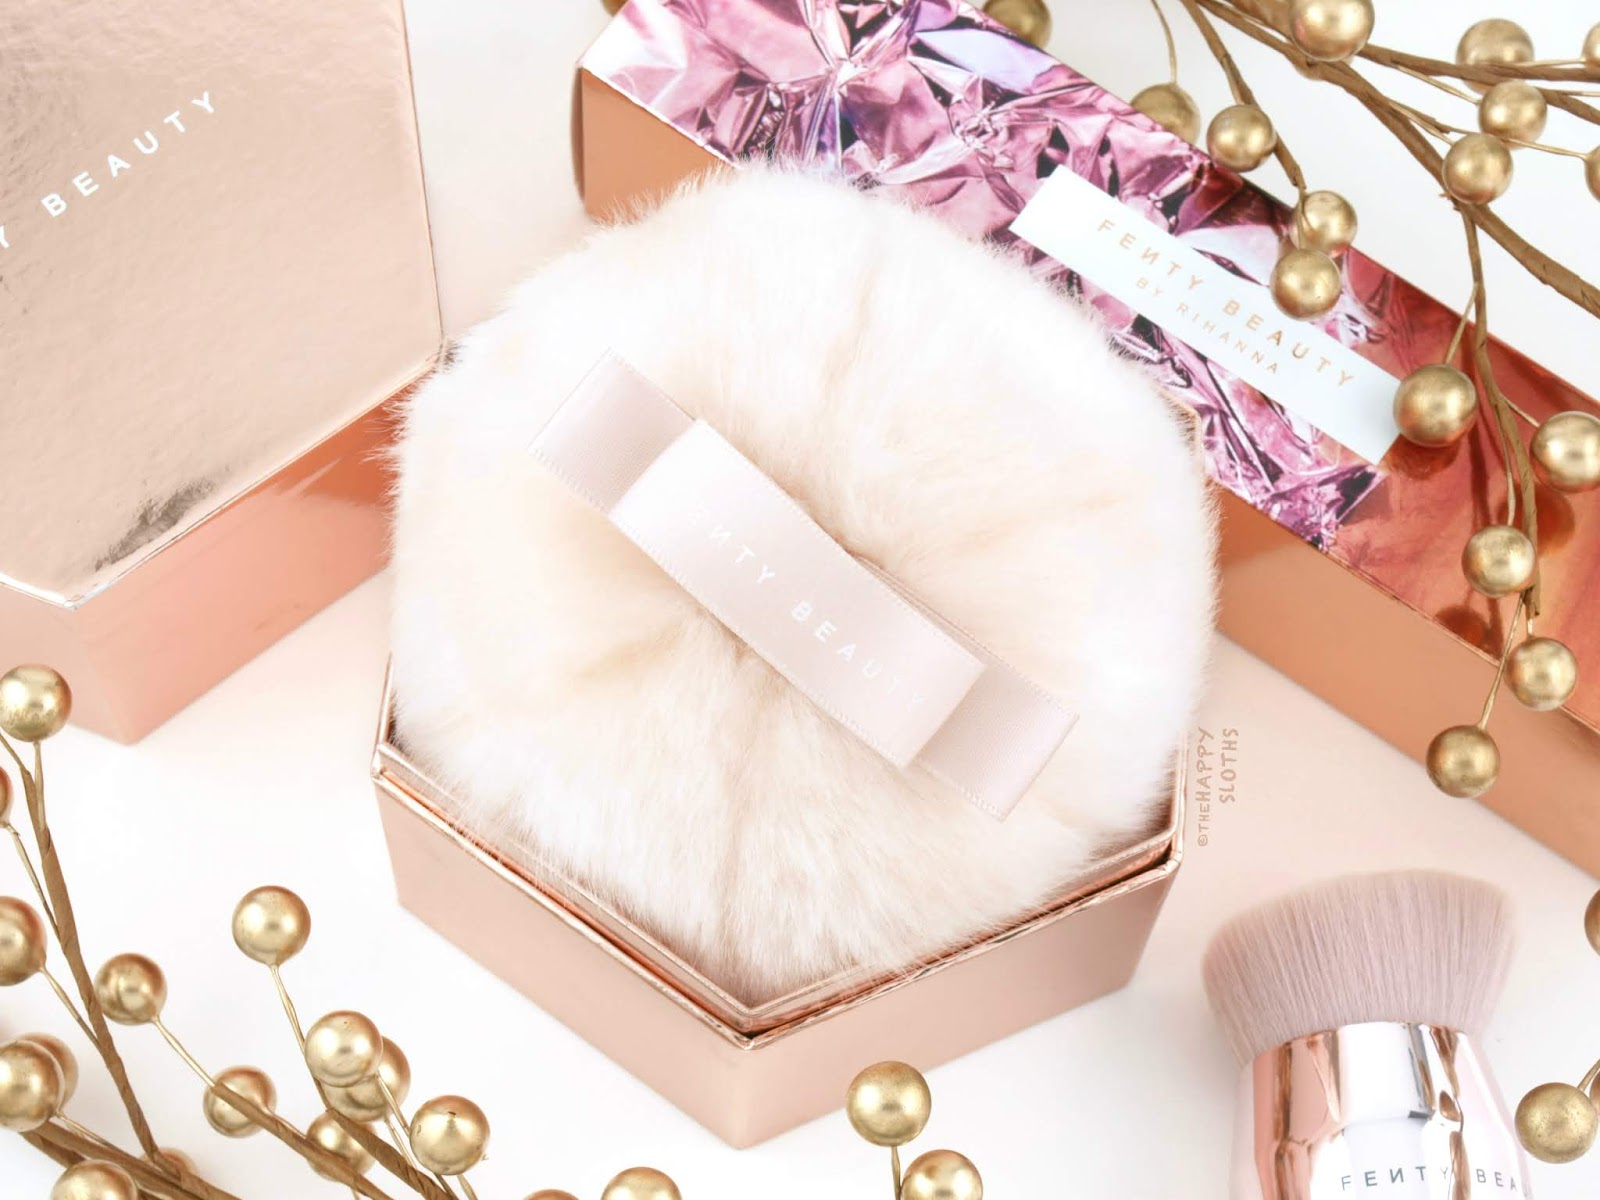 Fenty Beauty | Fairy Bomb Glittering Pom Pom: Review and Swatches